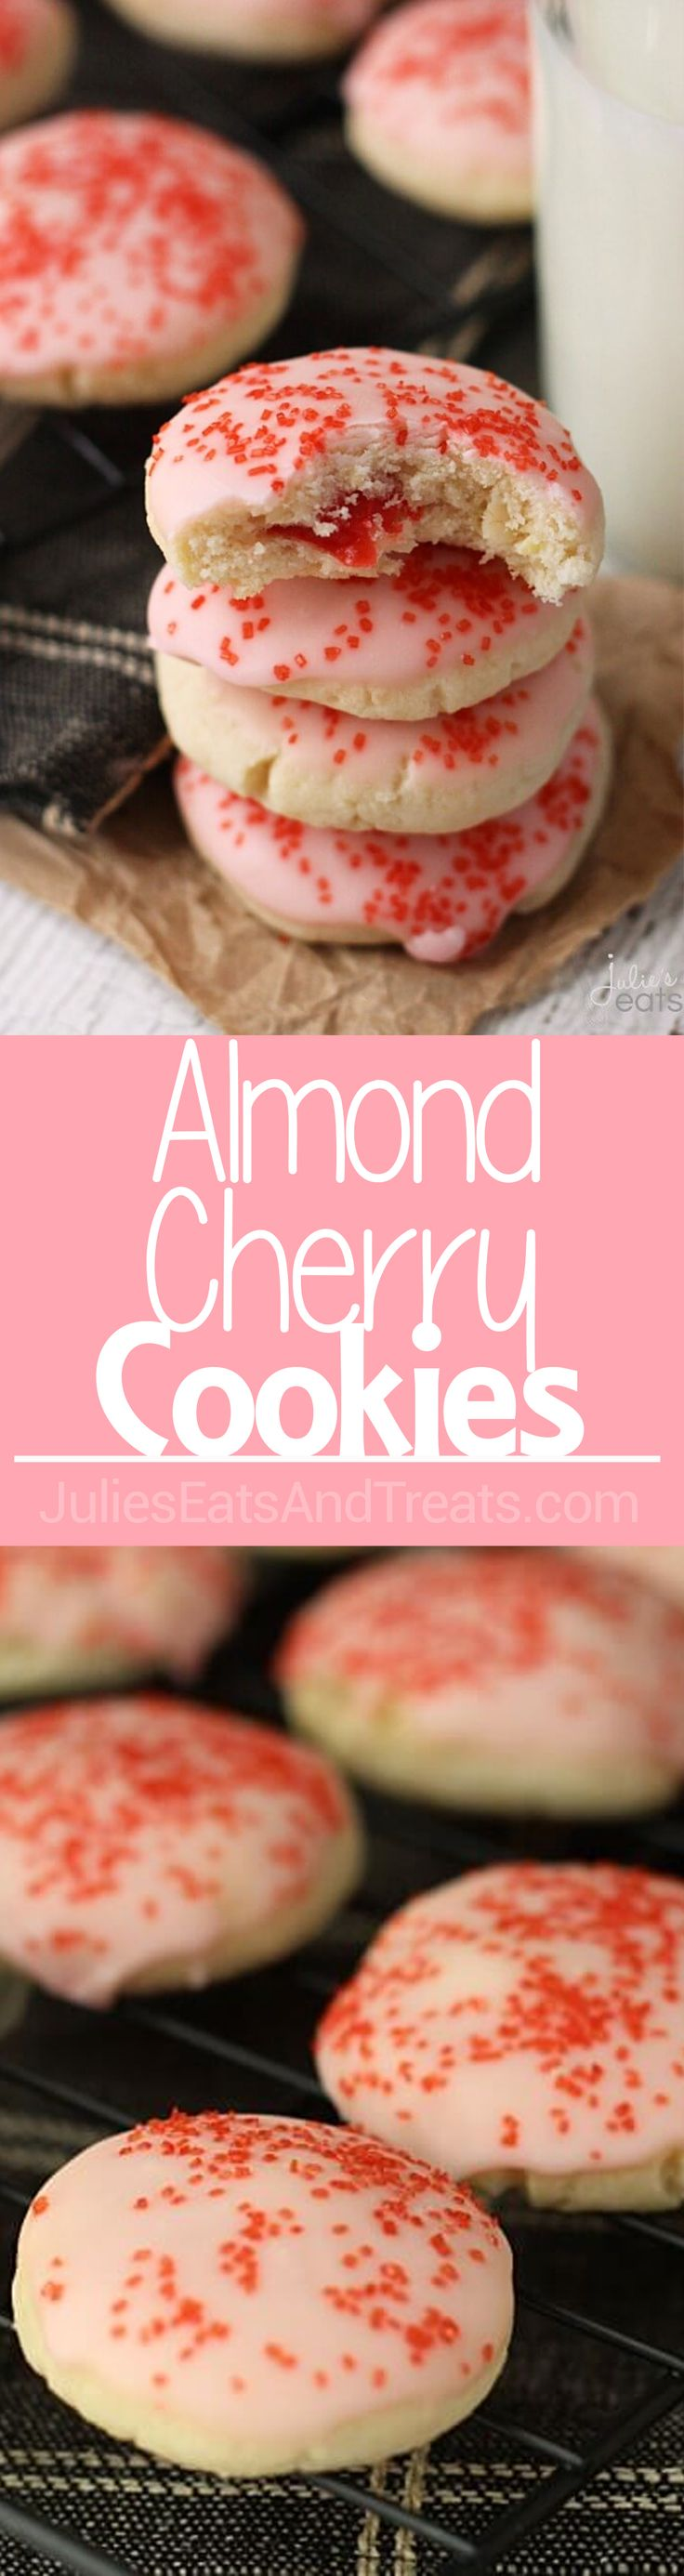 Almond Cherry Cookies Recipe ~ Soft, Delicious Almond Cookies Glazed in Cherry Frosting with a Surprise Cherry in the Middle! via @julieseats